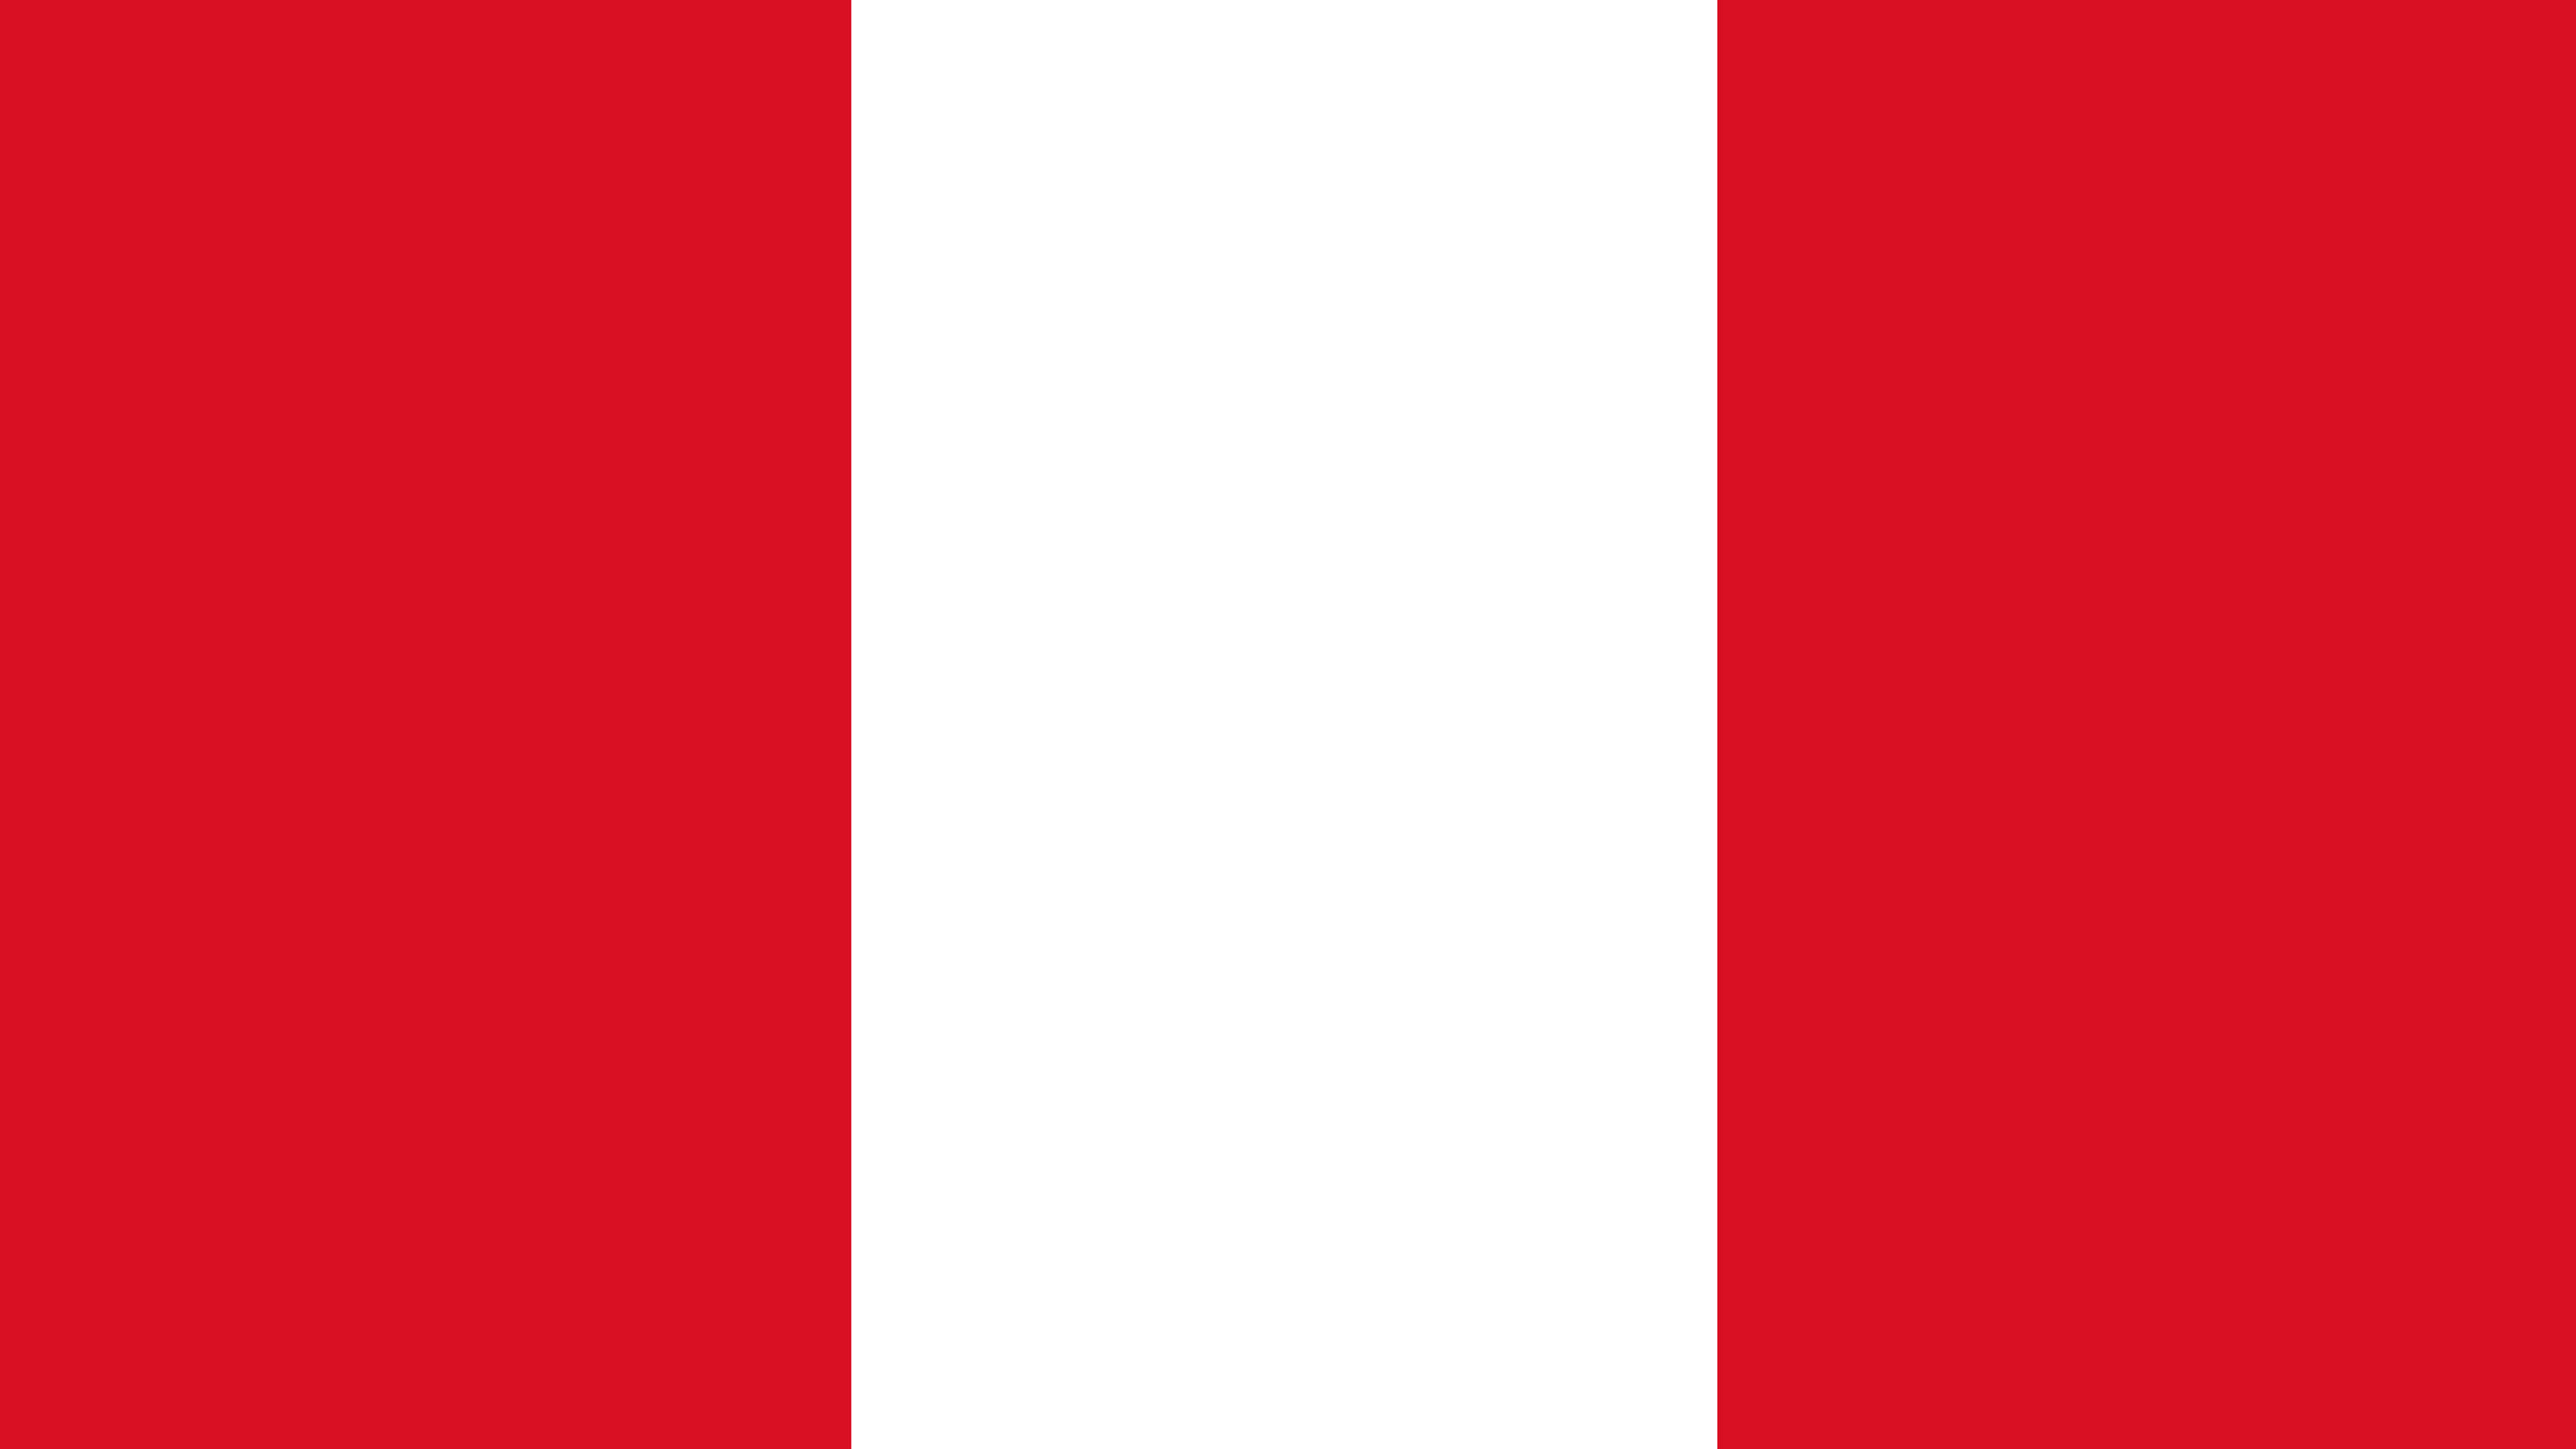 peru flag uhd 4k wallpaper